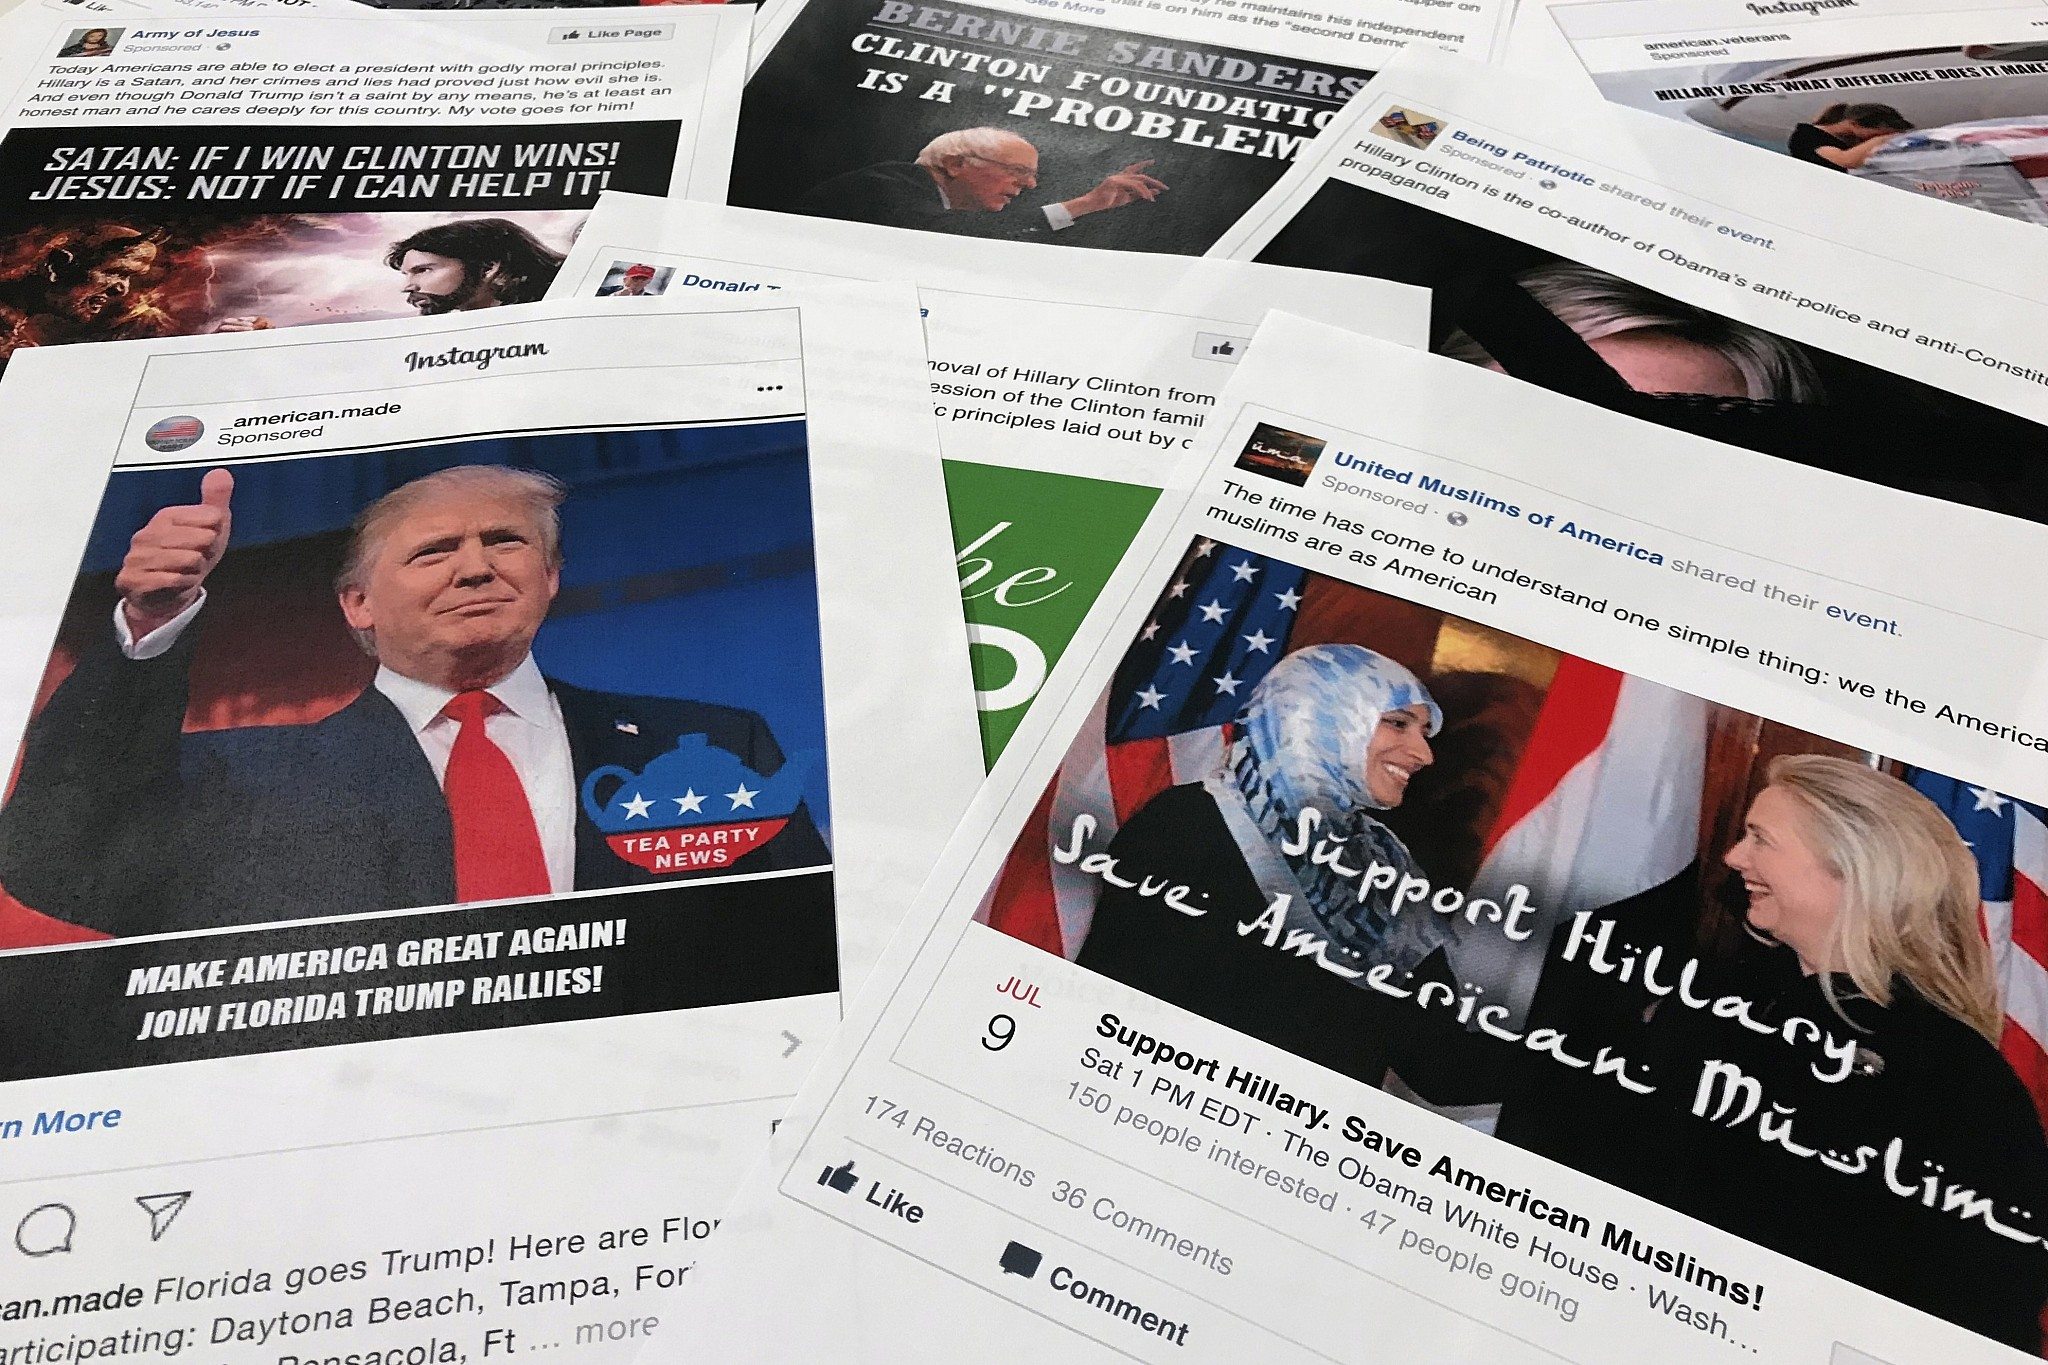 Report Prepared For Senate Shows Scale Of Russia Disinformation Larger Than Expected